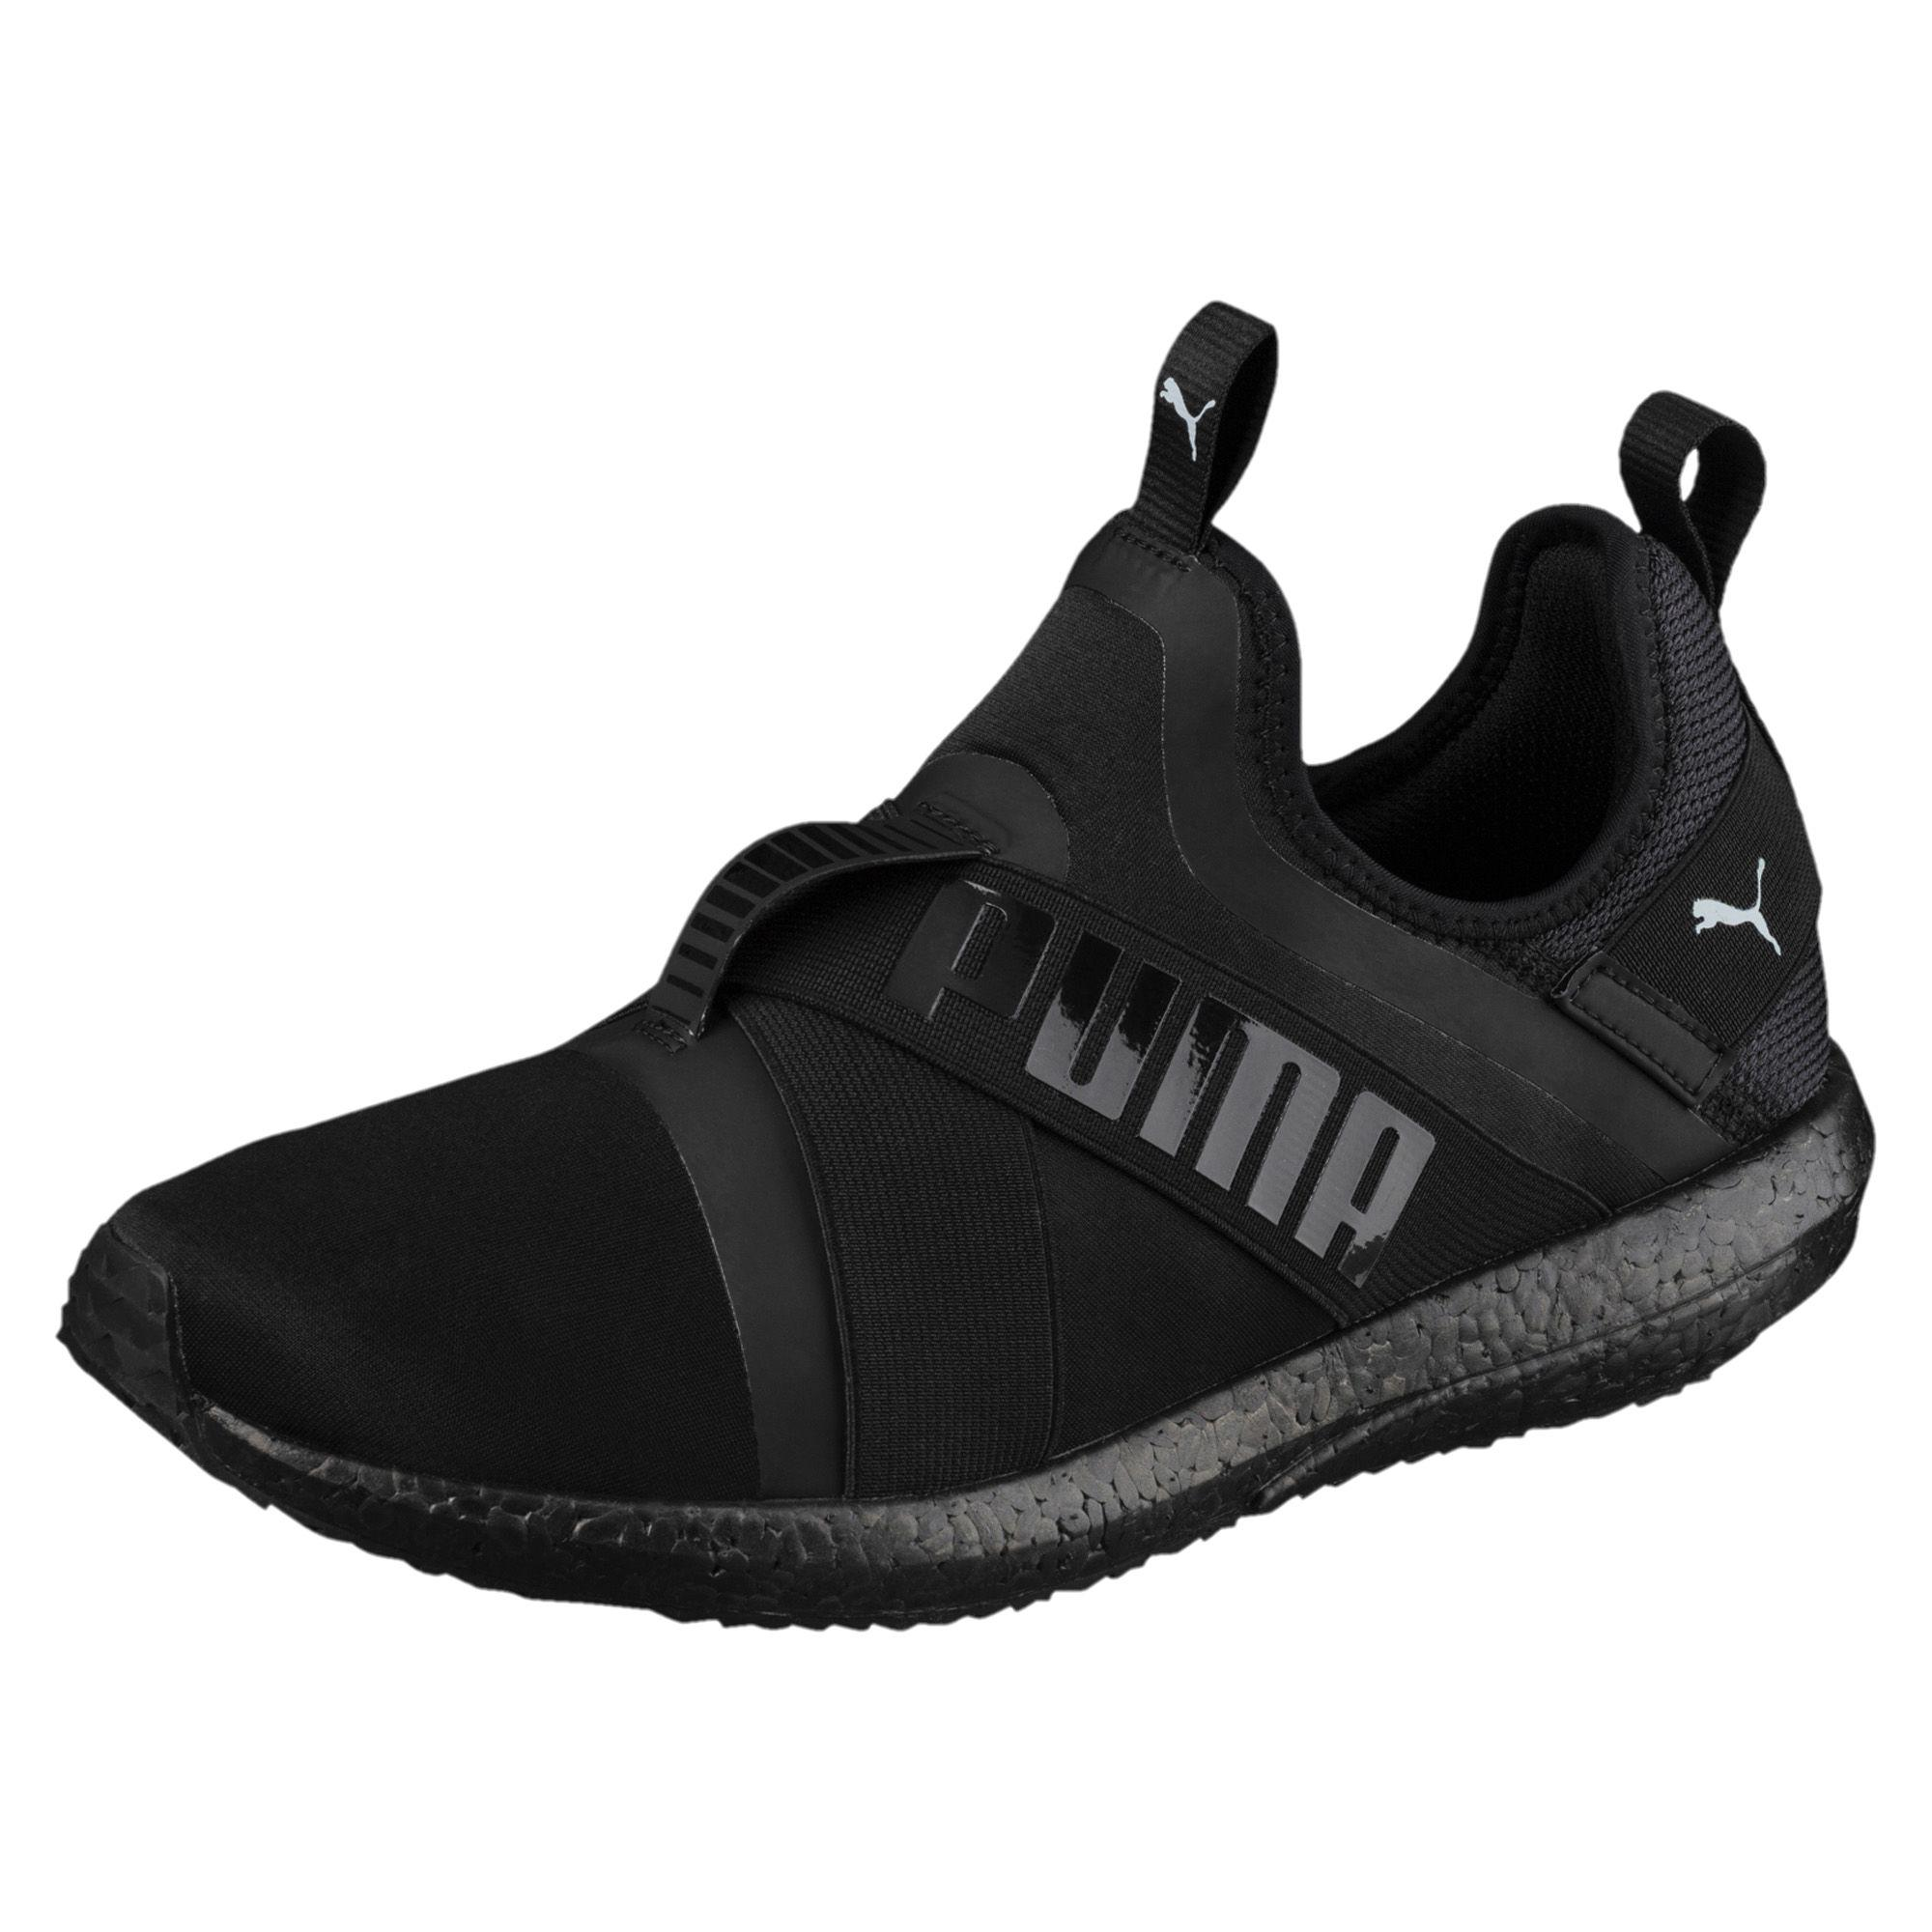 Lyst - PUMA Mega Nrgy X Men s Running Shoes in Black for Men 5930a8c91